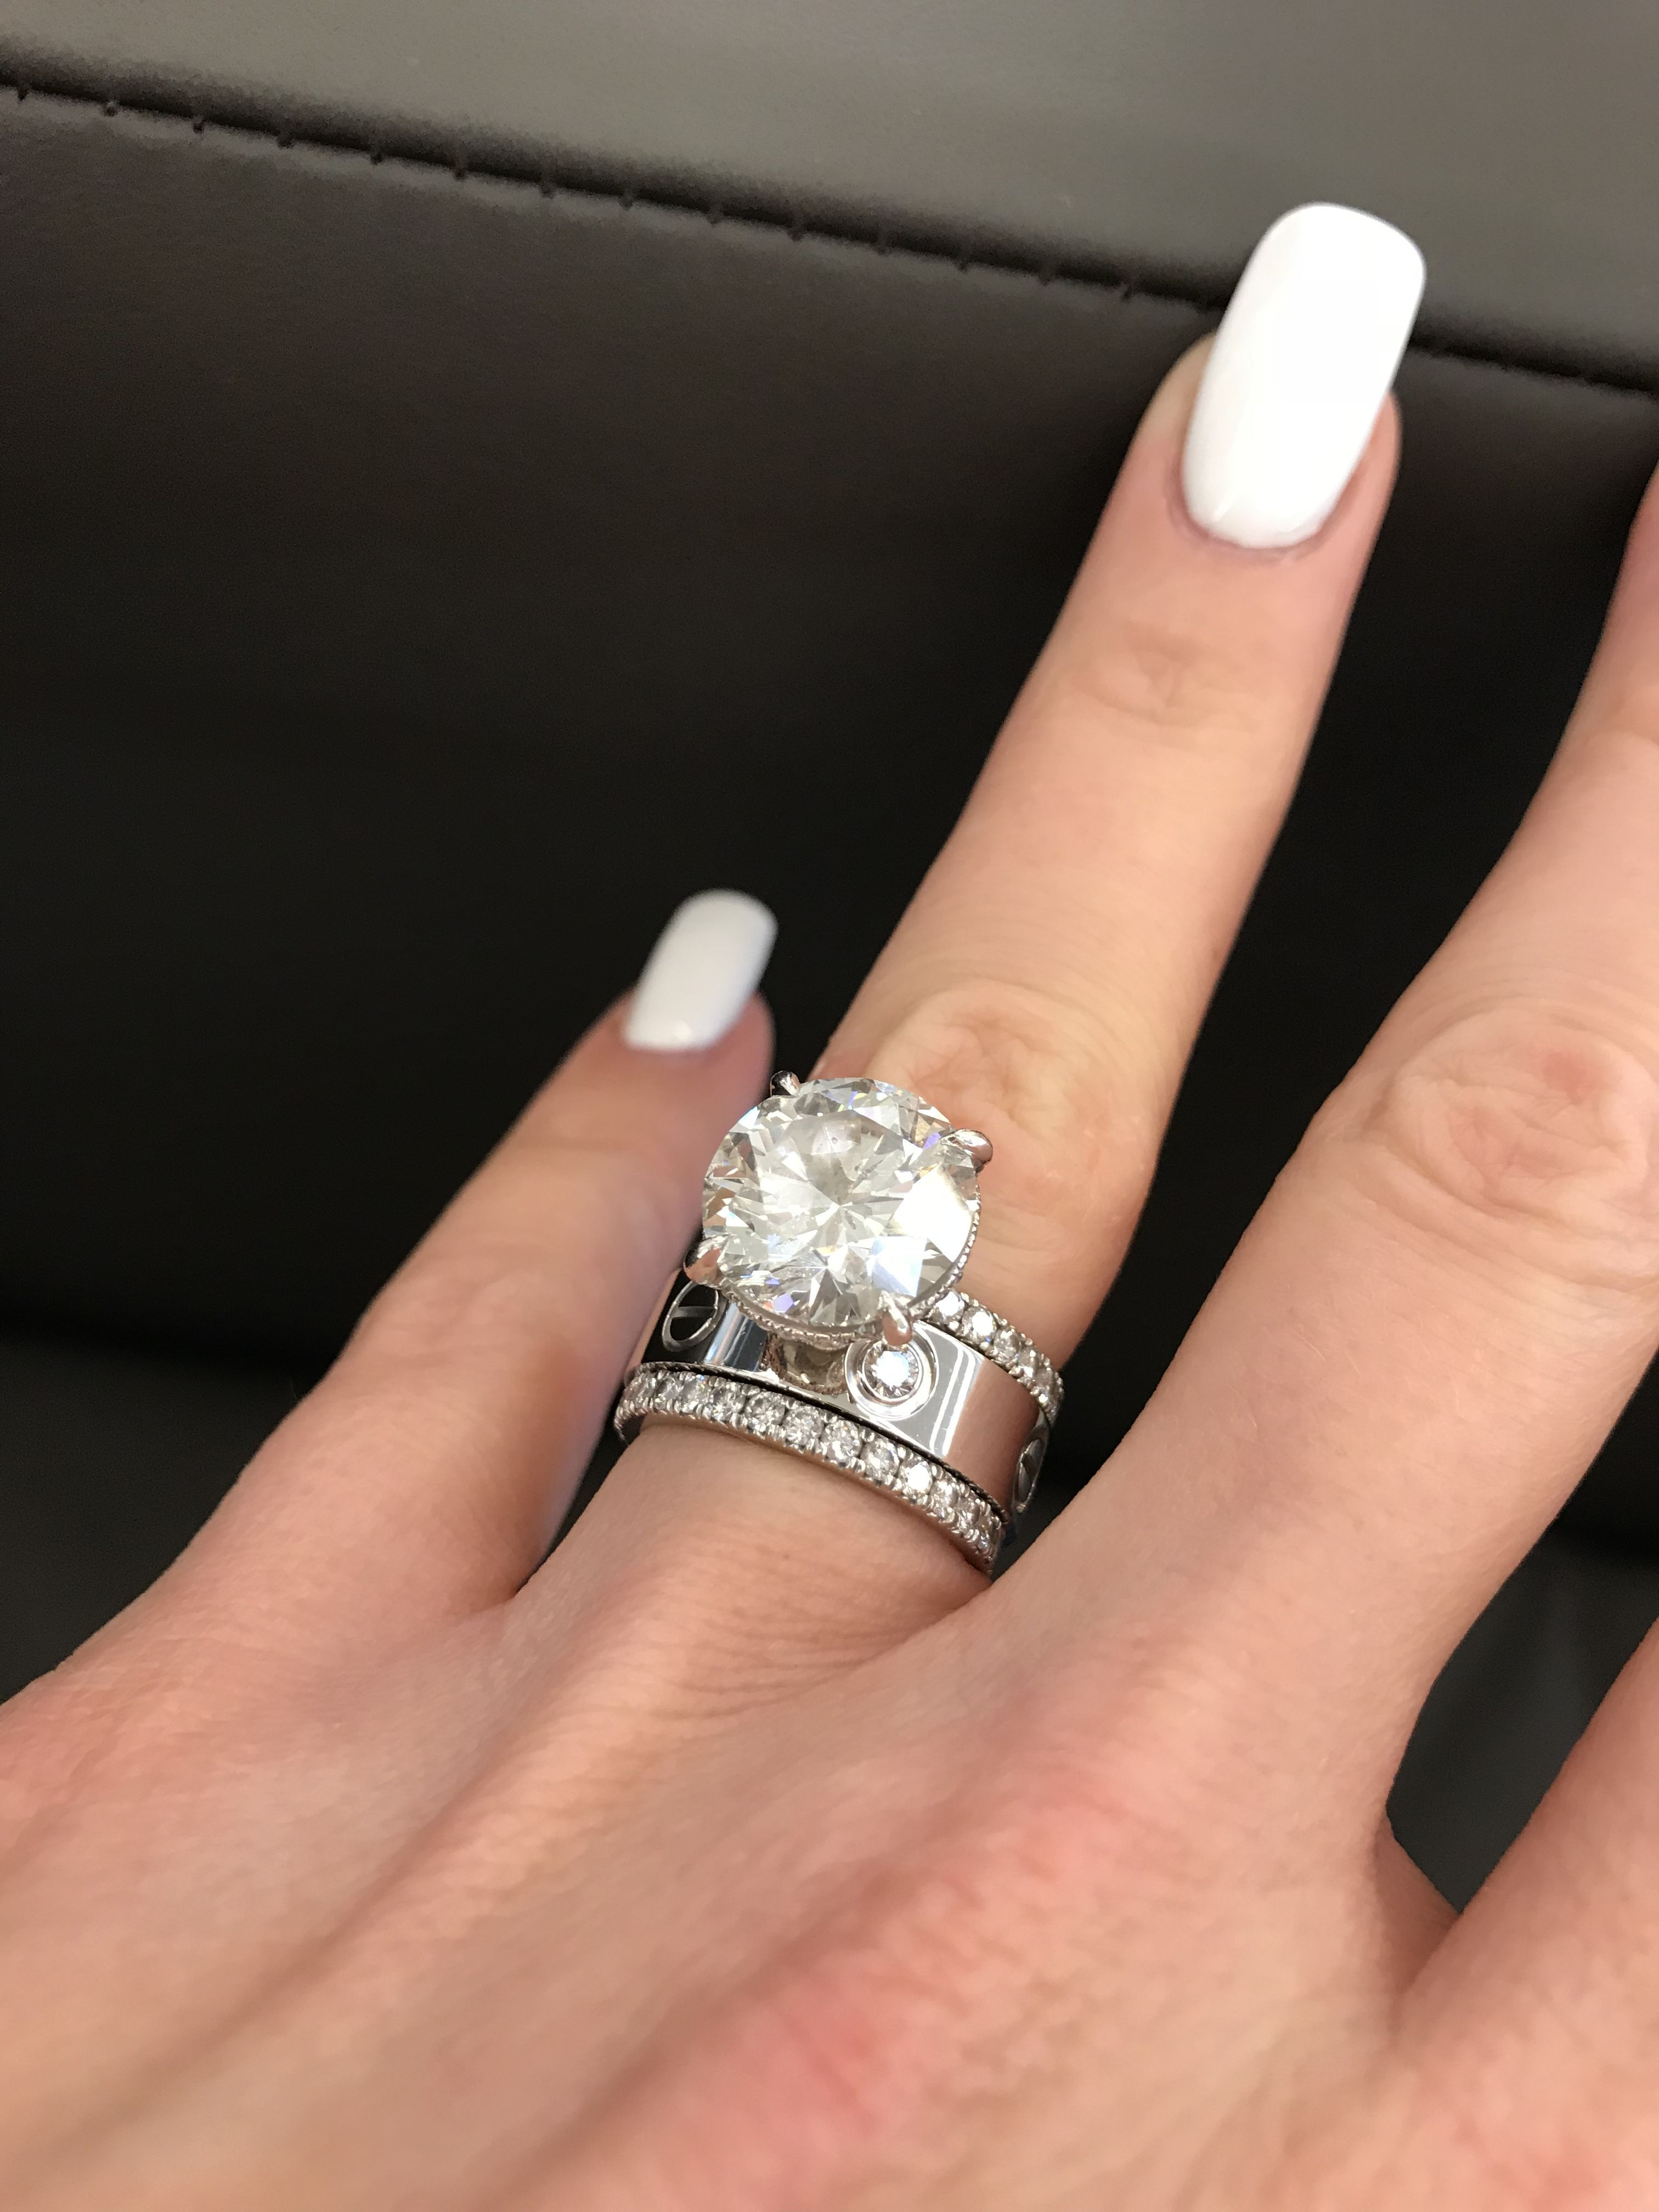 Cartier Love Ring White Gold With 3 Diamonds Bague Bague